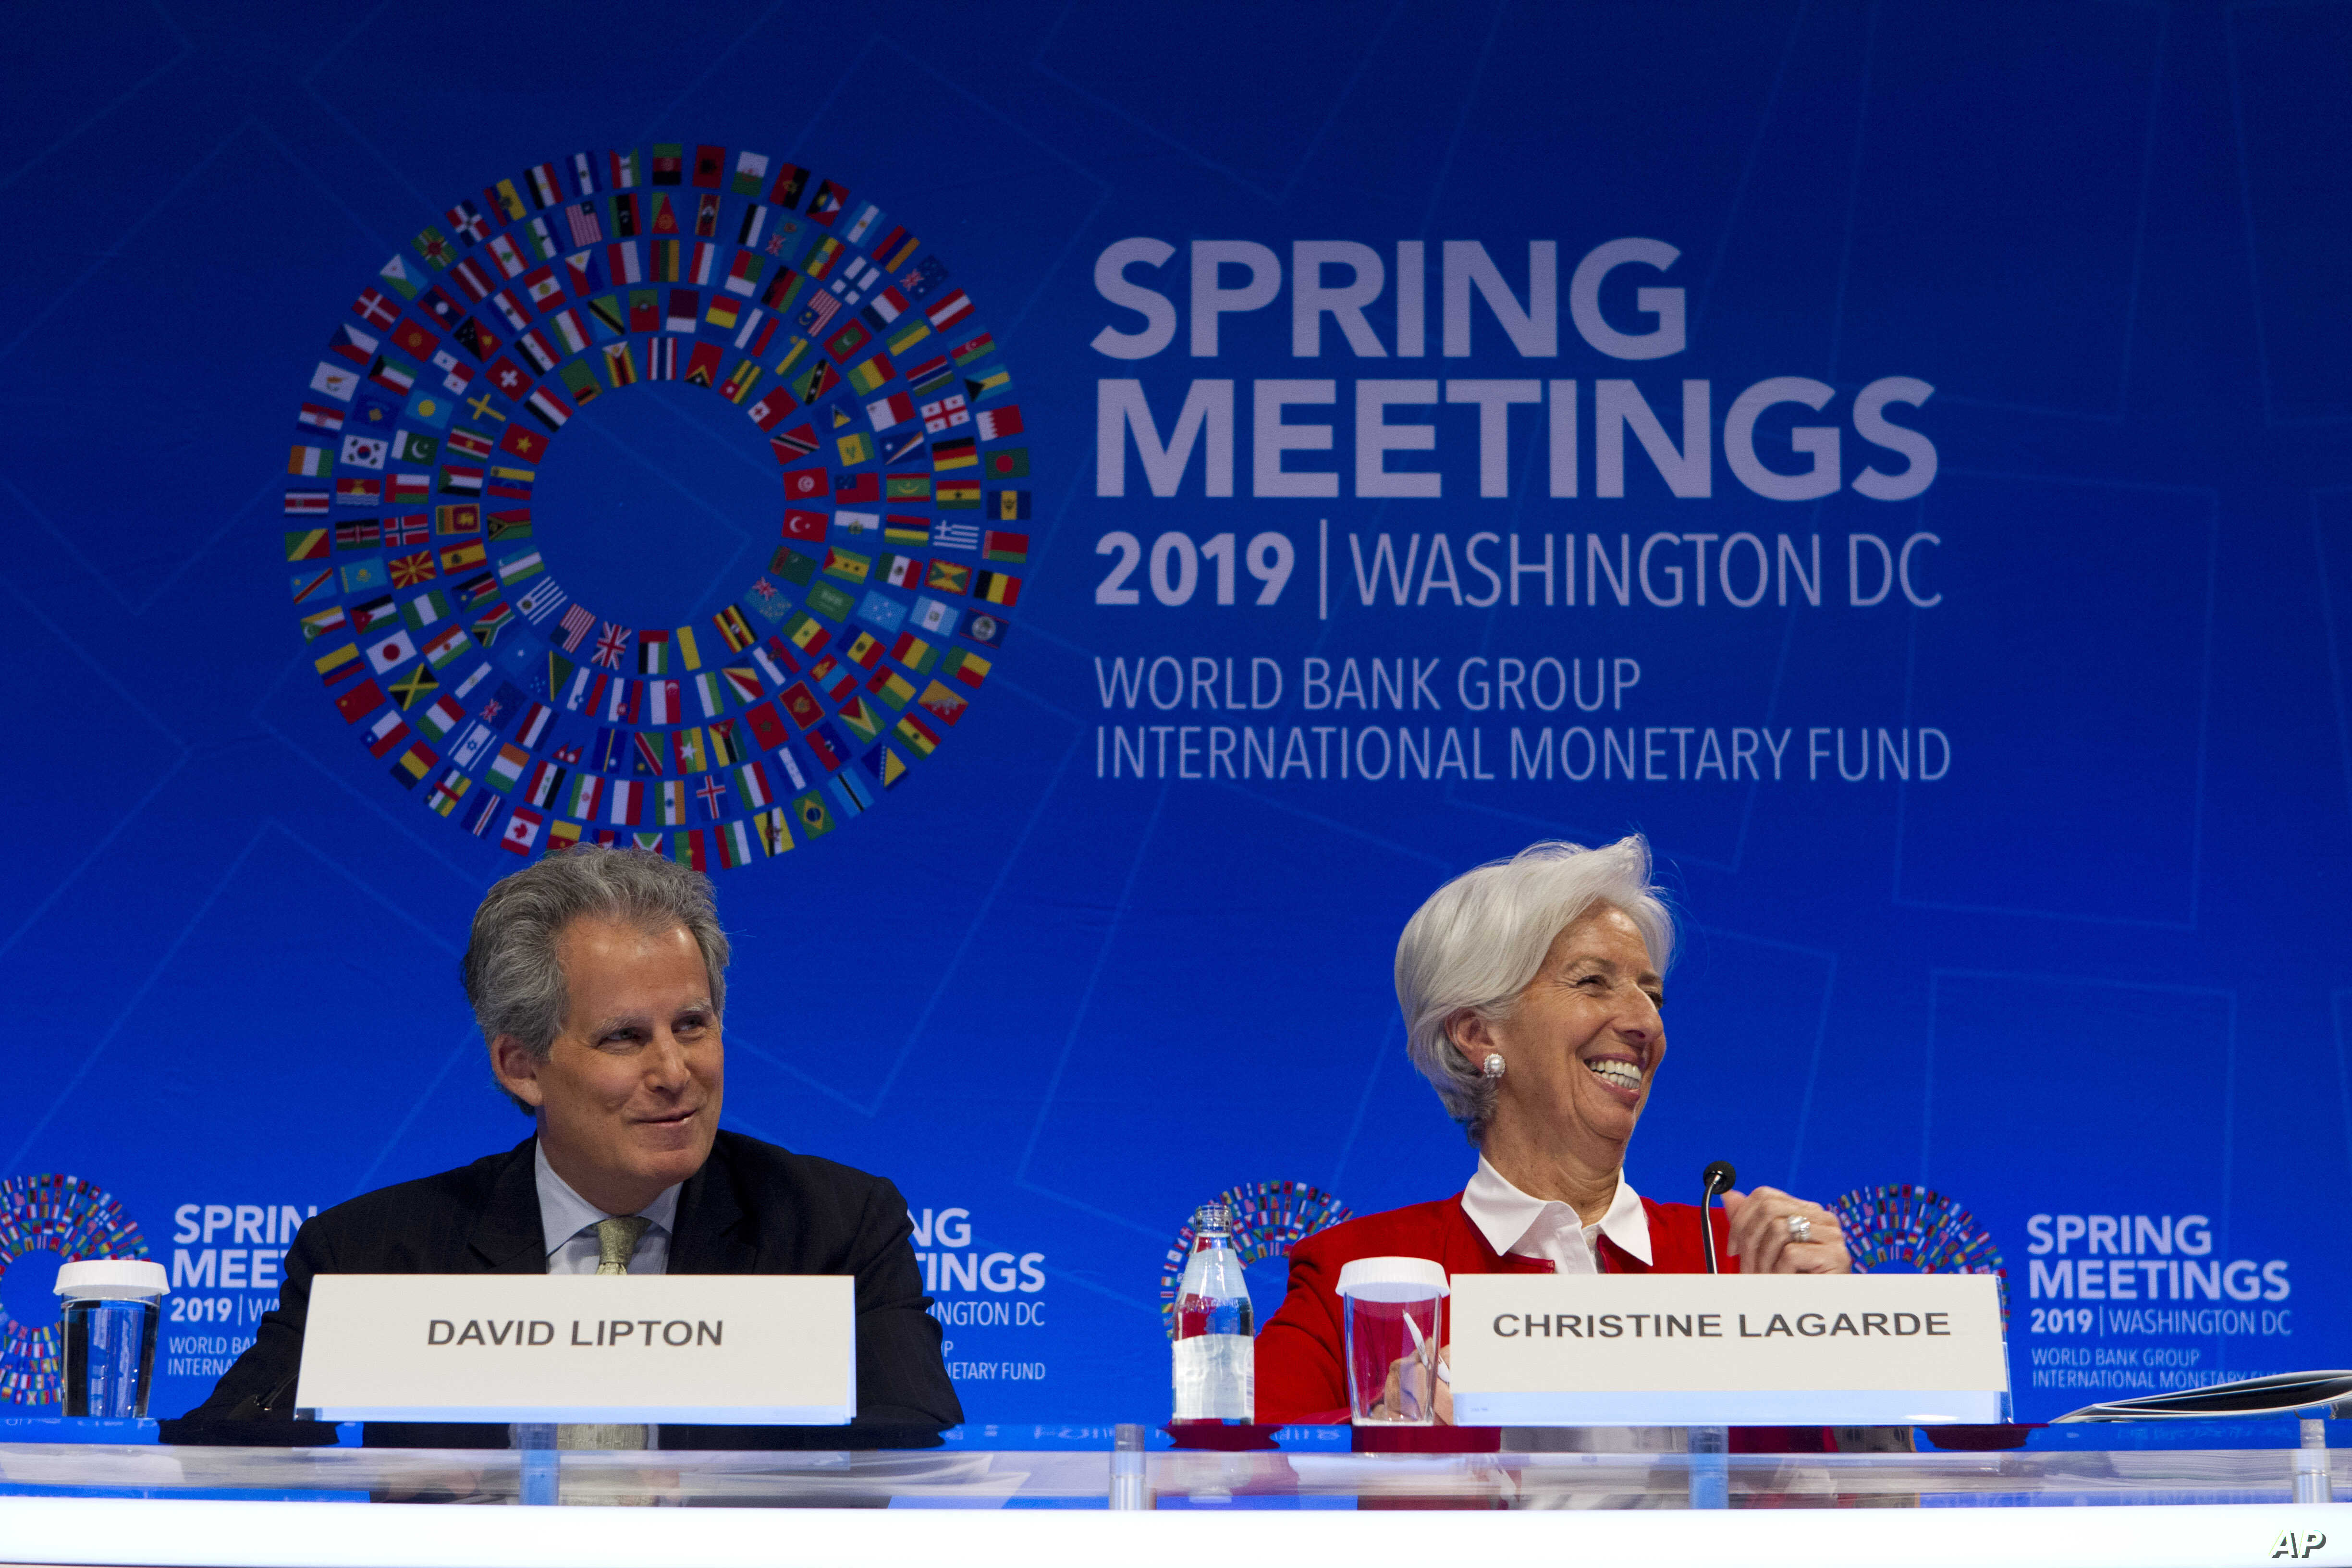 Venezuela Leadership Issue Still Blocking IMF, World Bank